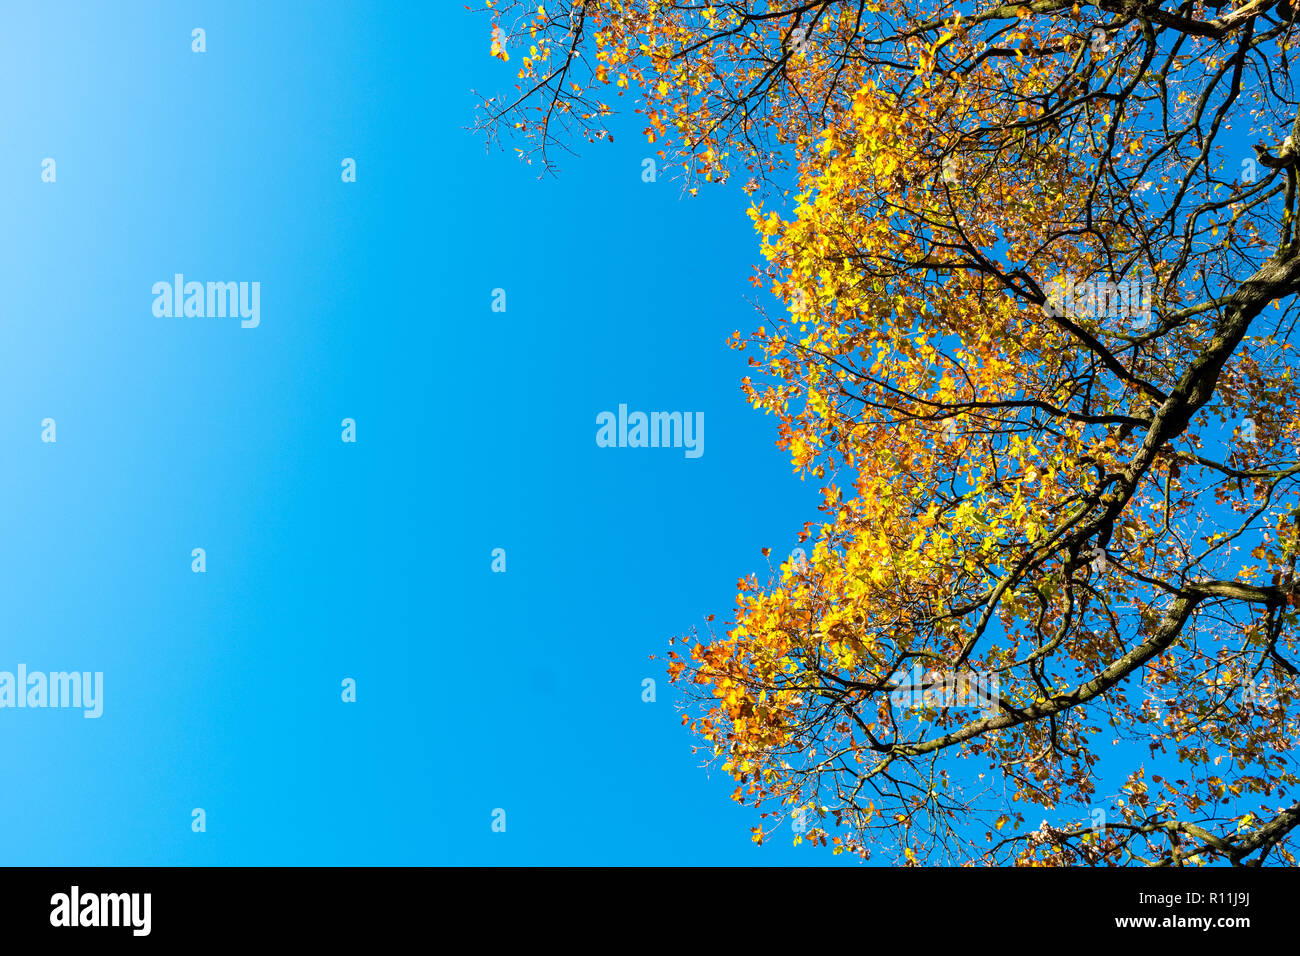 autumn leaves against a blue sky in the Peak District National Park, UK - Stock Image